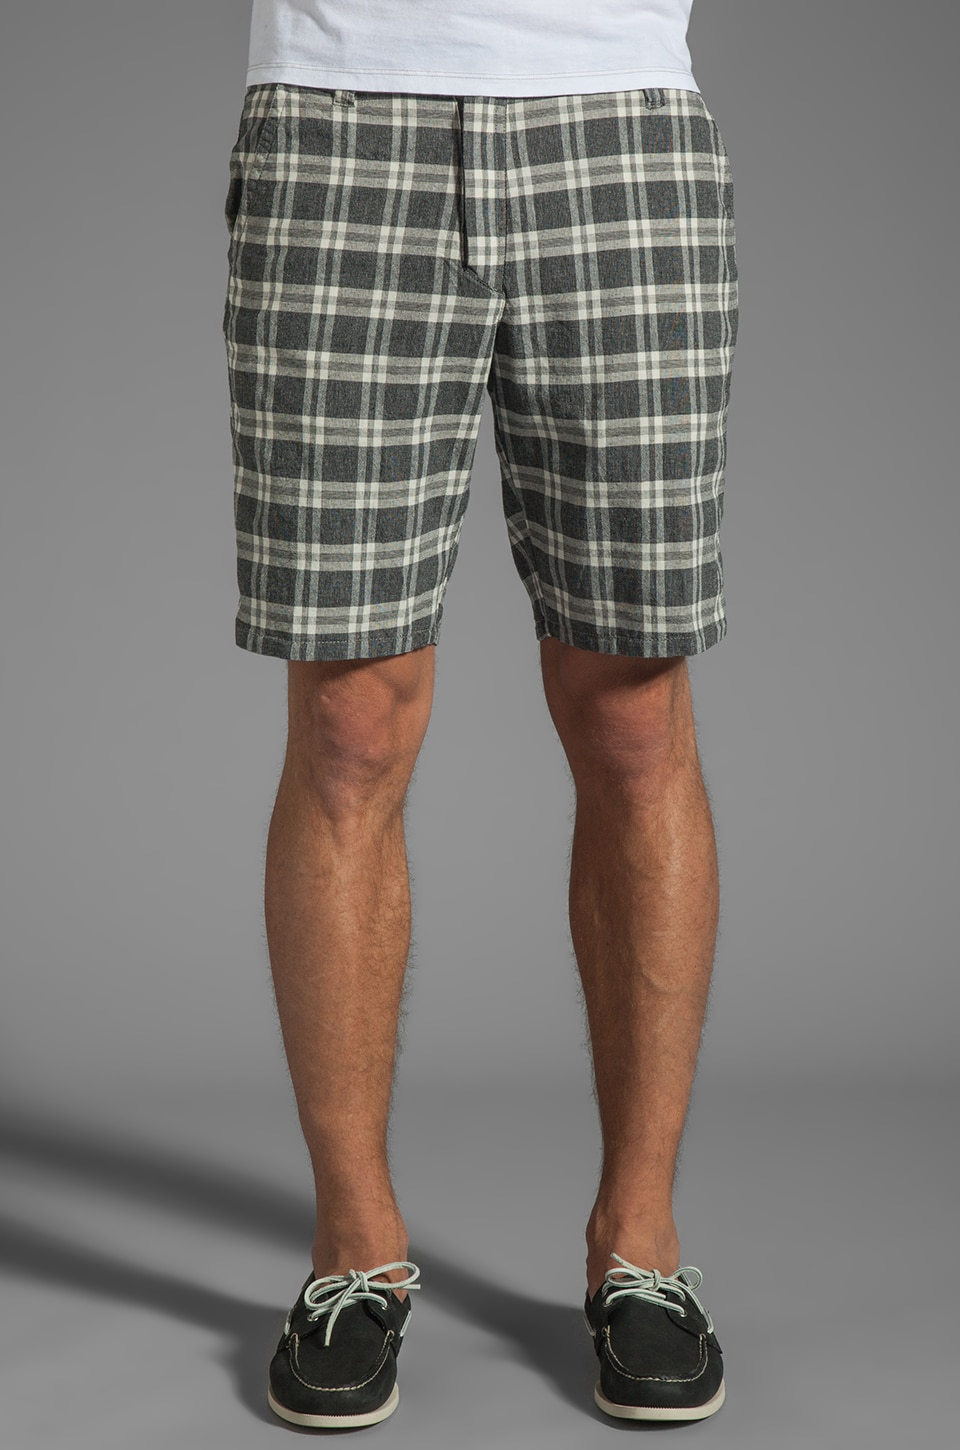 Howe Plaid Reversible Switchstance YD Stripe in Fade to Black